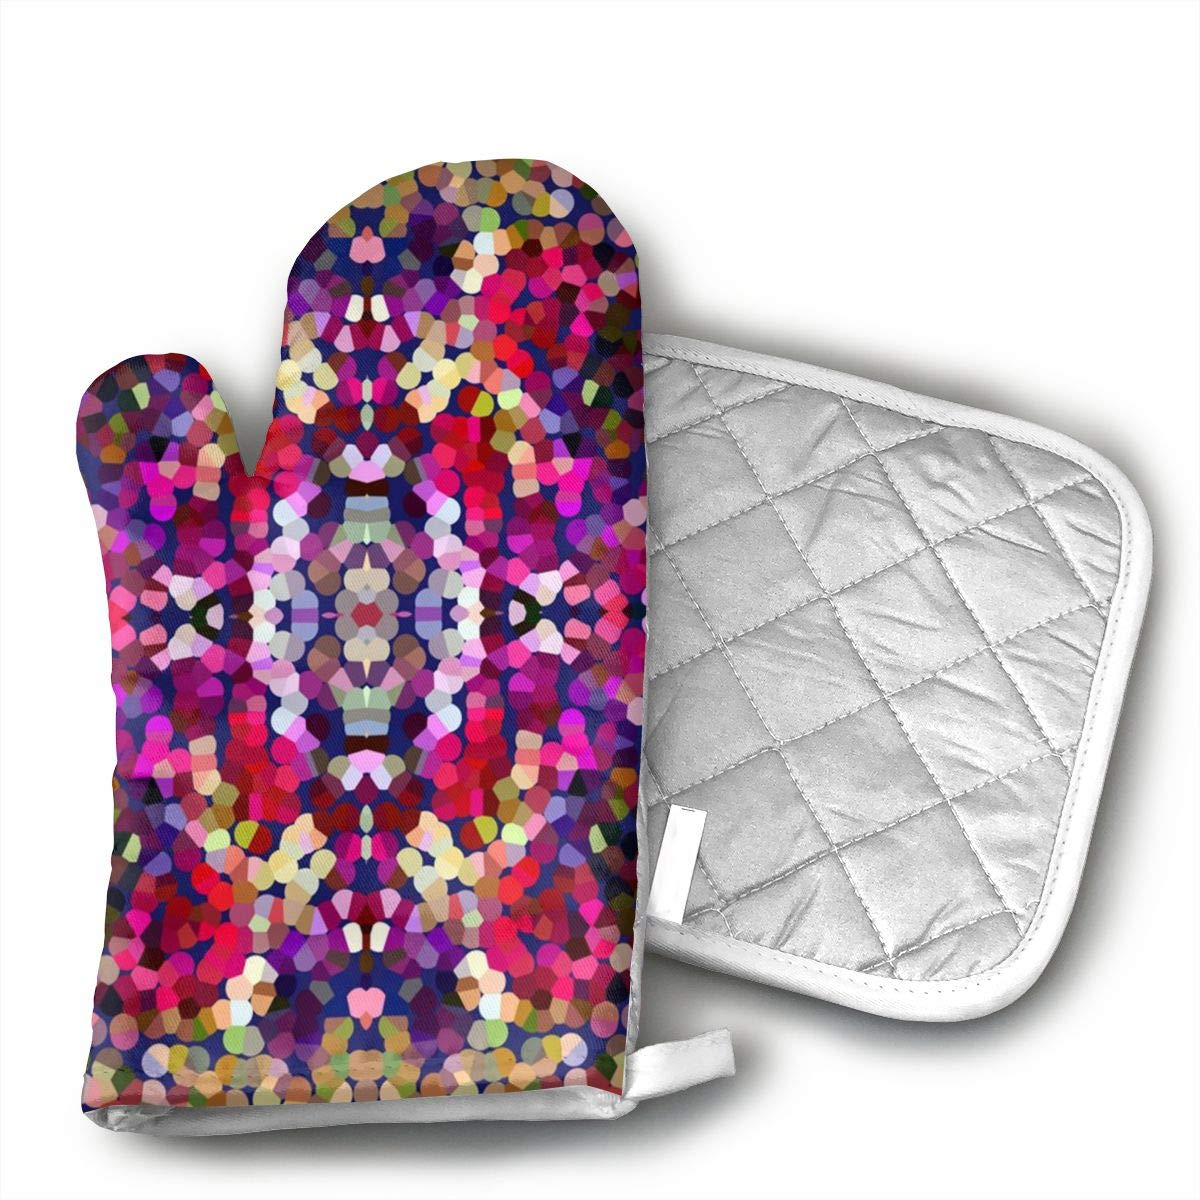 Klasl5 New Year's Eve Confetti Oven Mitts,Heat Resistant Oven Gloves,Non-Slip Cooking Gloves,Washable Kitchen Mitts for Baking, Barbecue.